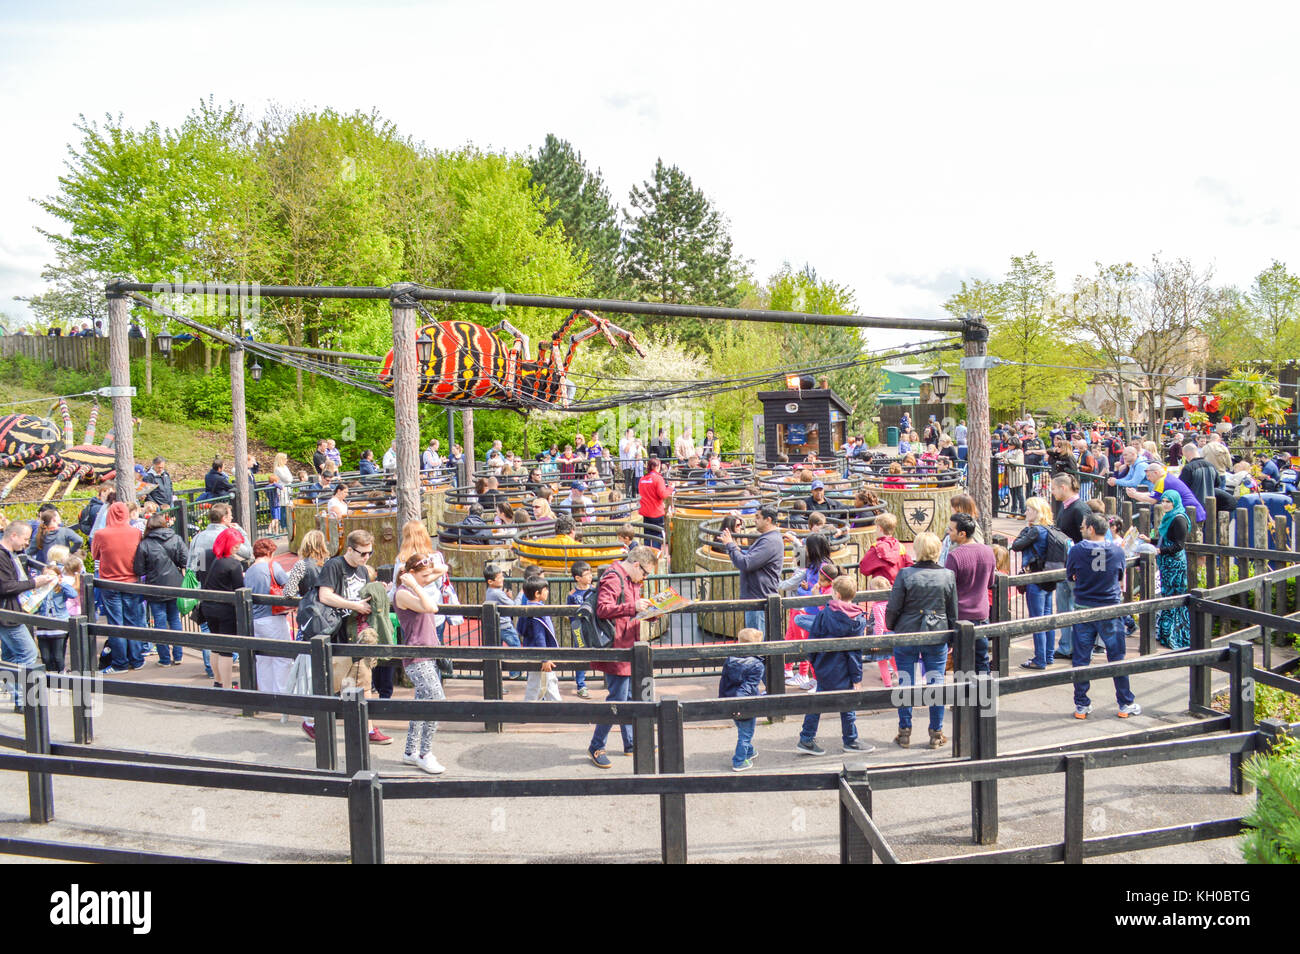 WINDSOR, BERKSHIRE. ENGLAND UK- APRIL 20 2016 : Legoland resort. People enjoying one of the many rides at Legoland Stock Photo